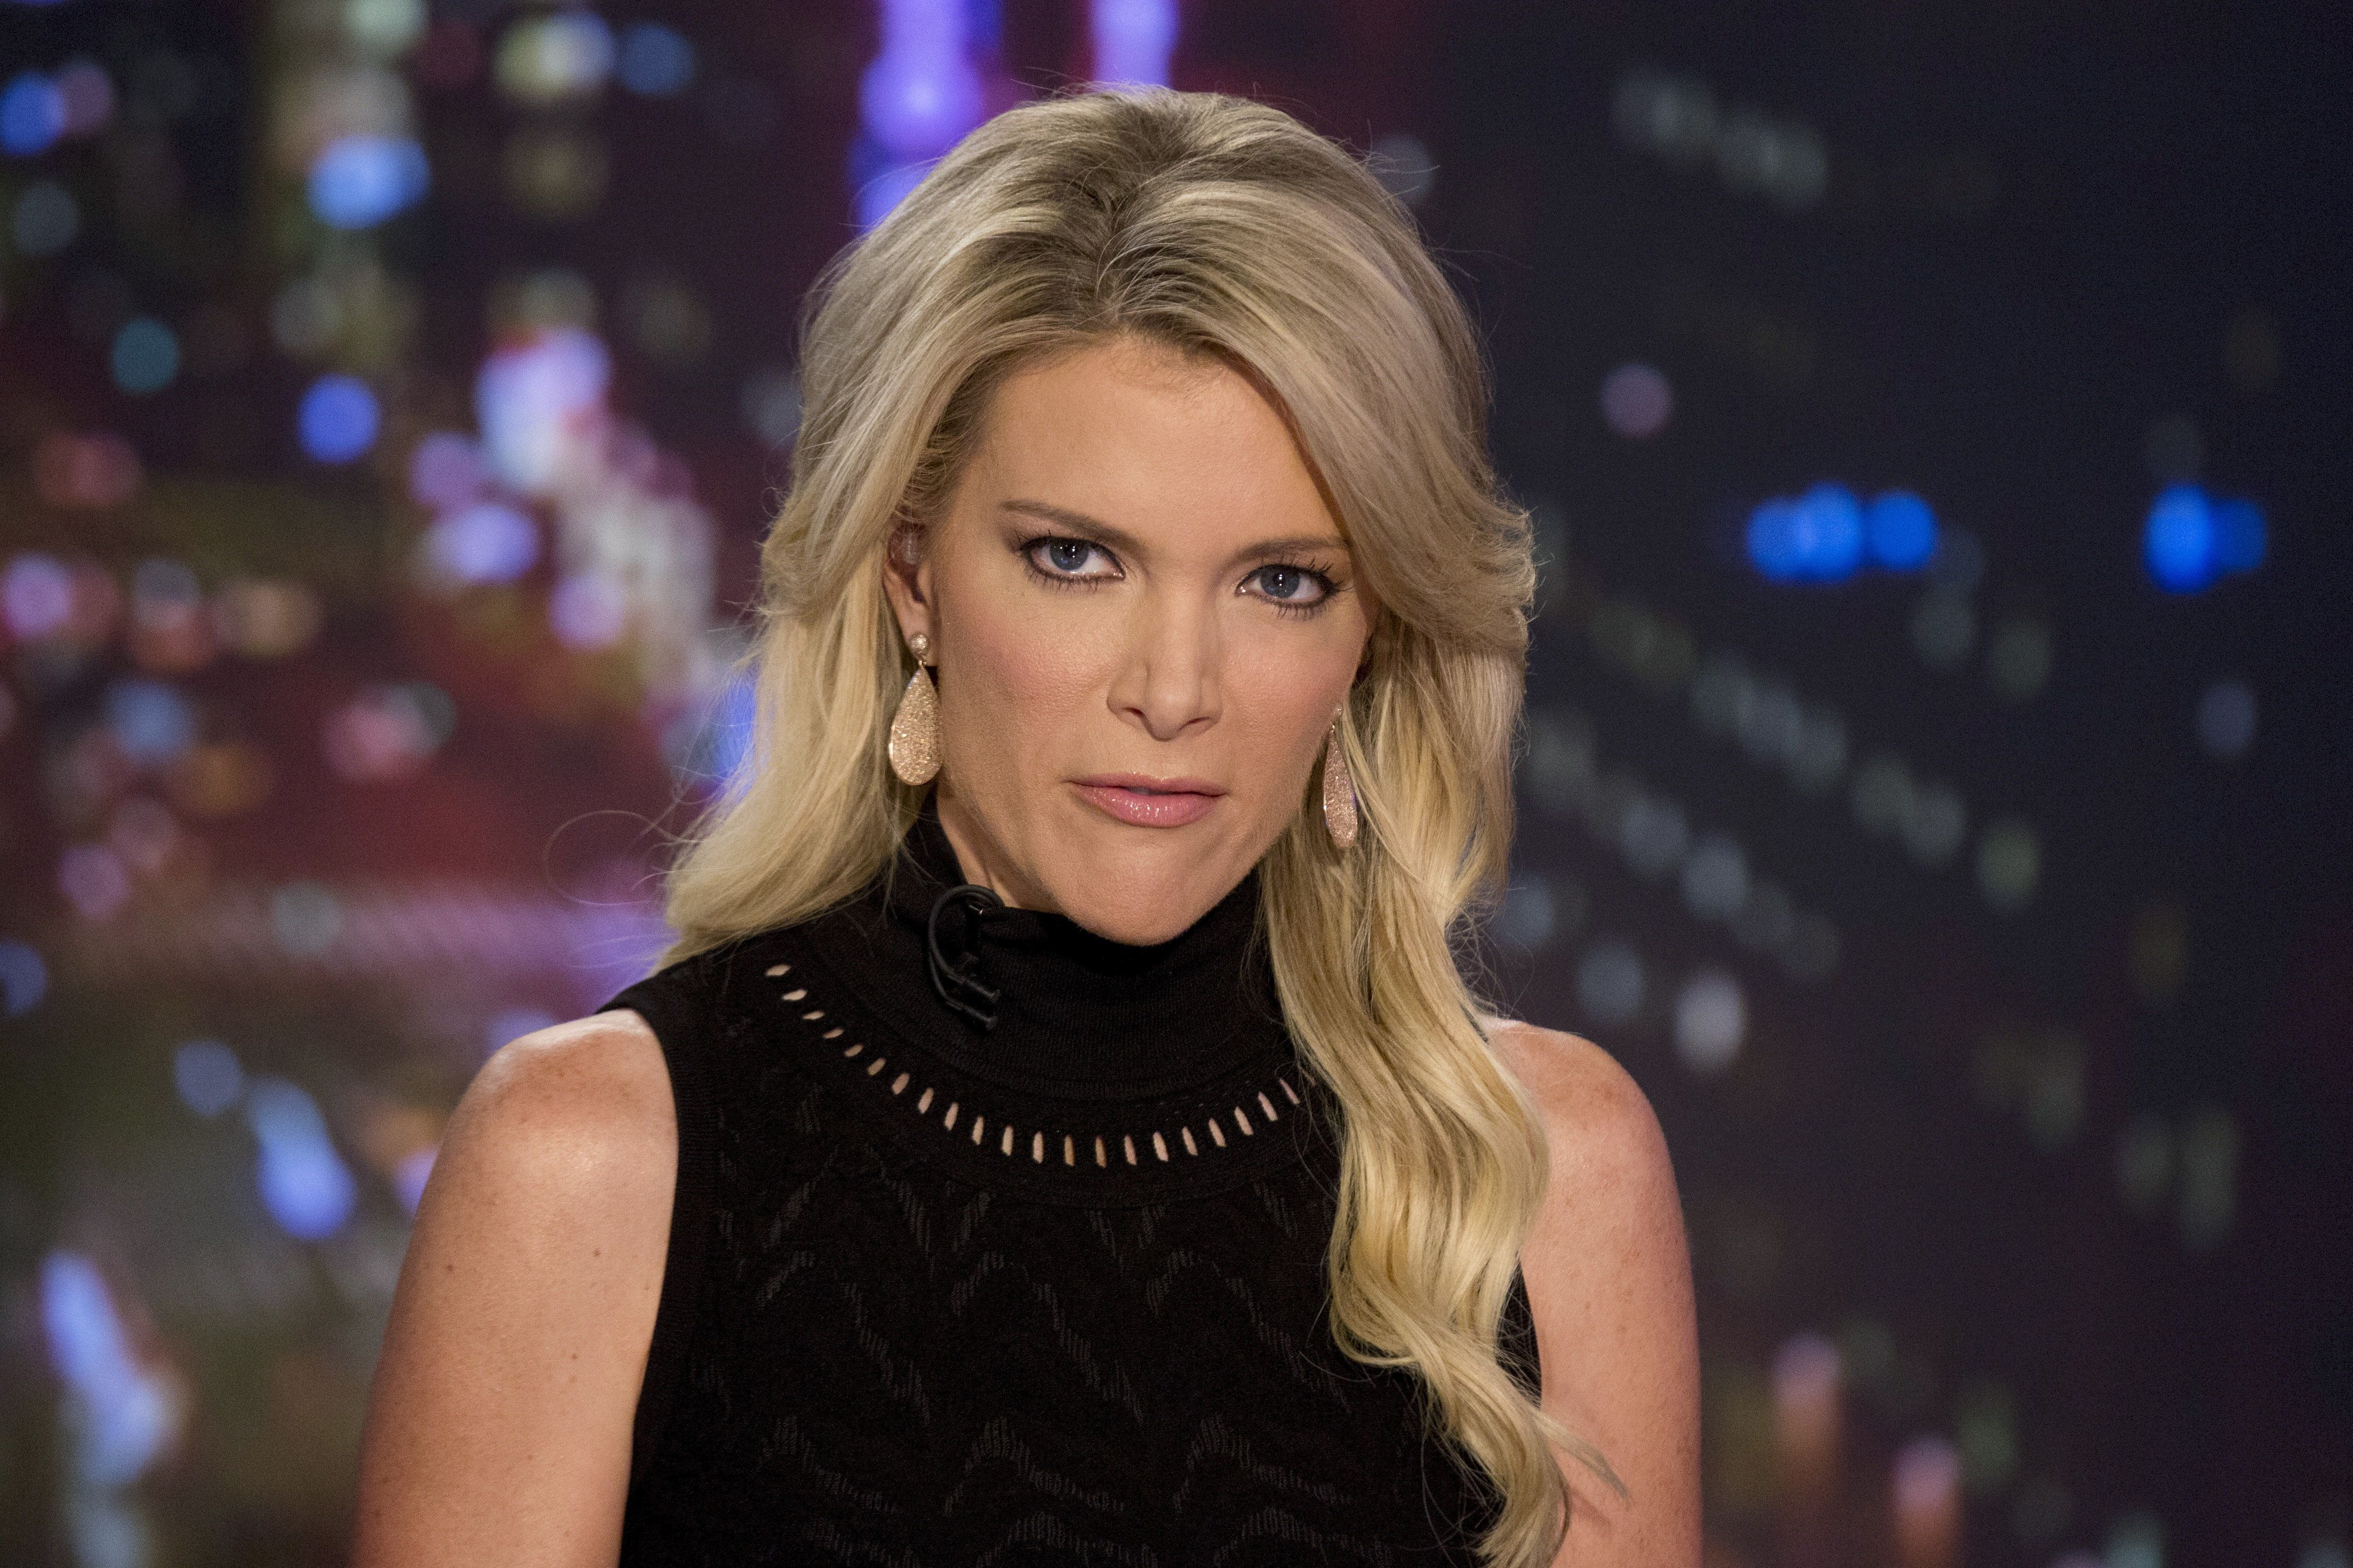 Fox News star Megyn Kelly, who is in the midst of contract negotiations, has reportedly been offered more than $20 million by